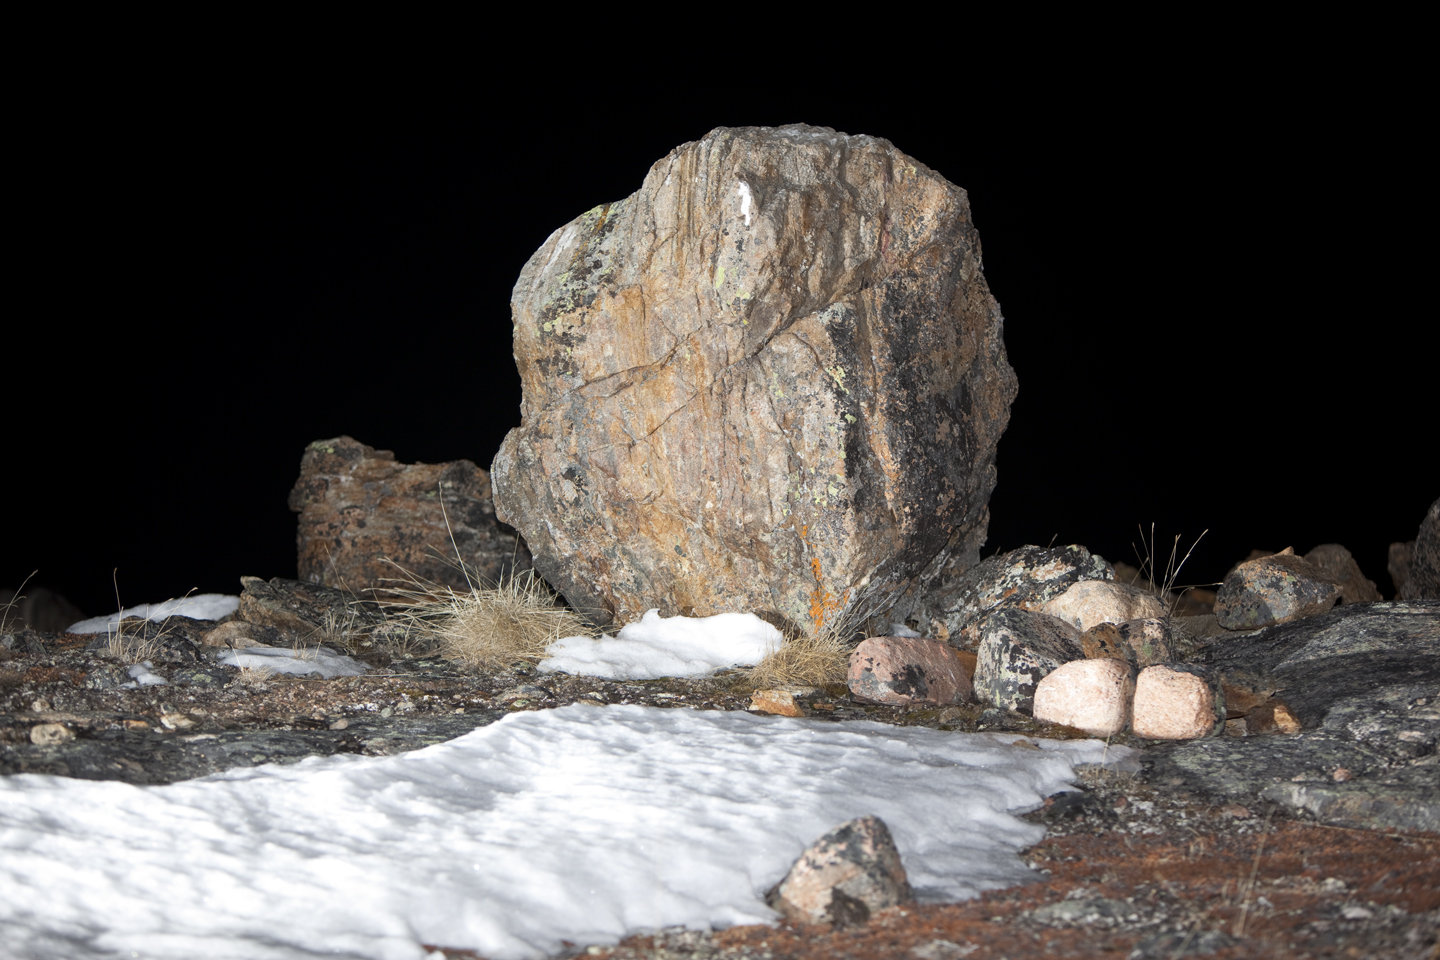 Boulder #3, 2012, digital c-print mounted on dibond. 60x90 inches, edition of 5